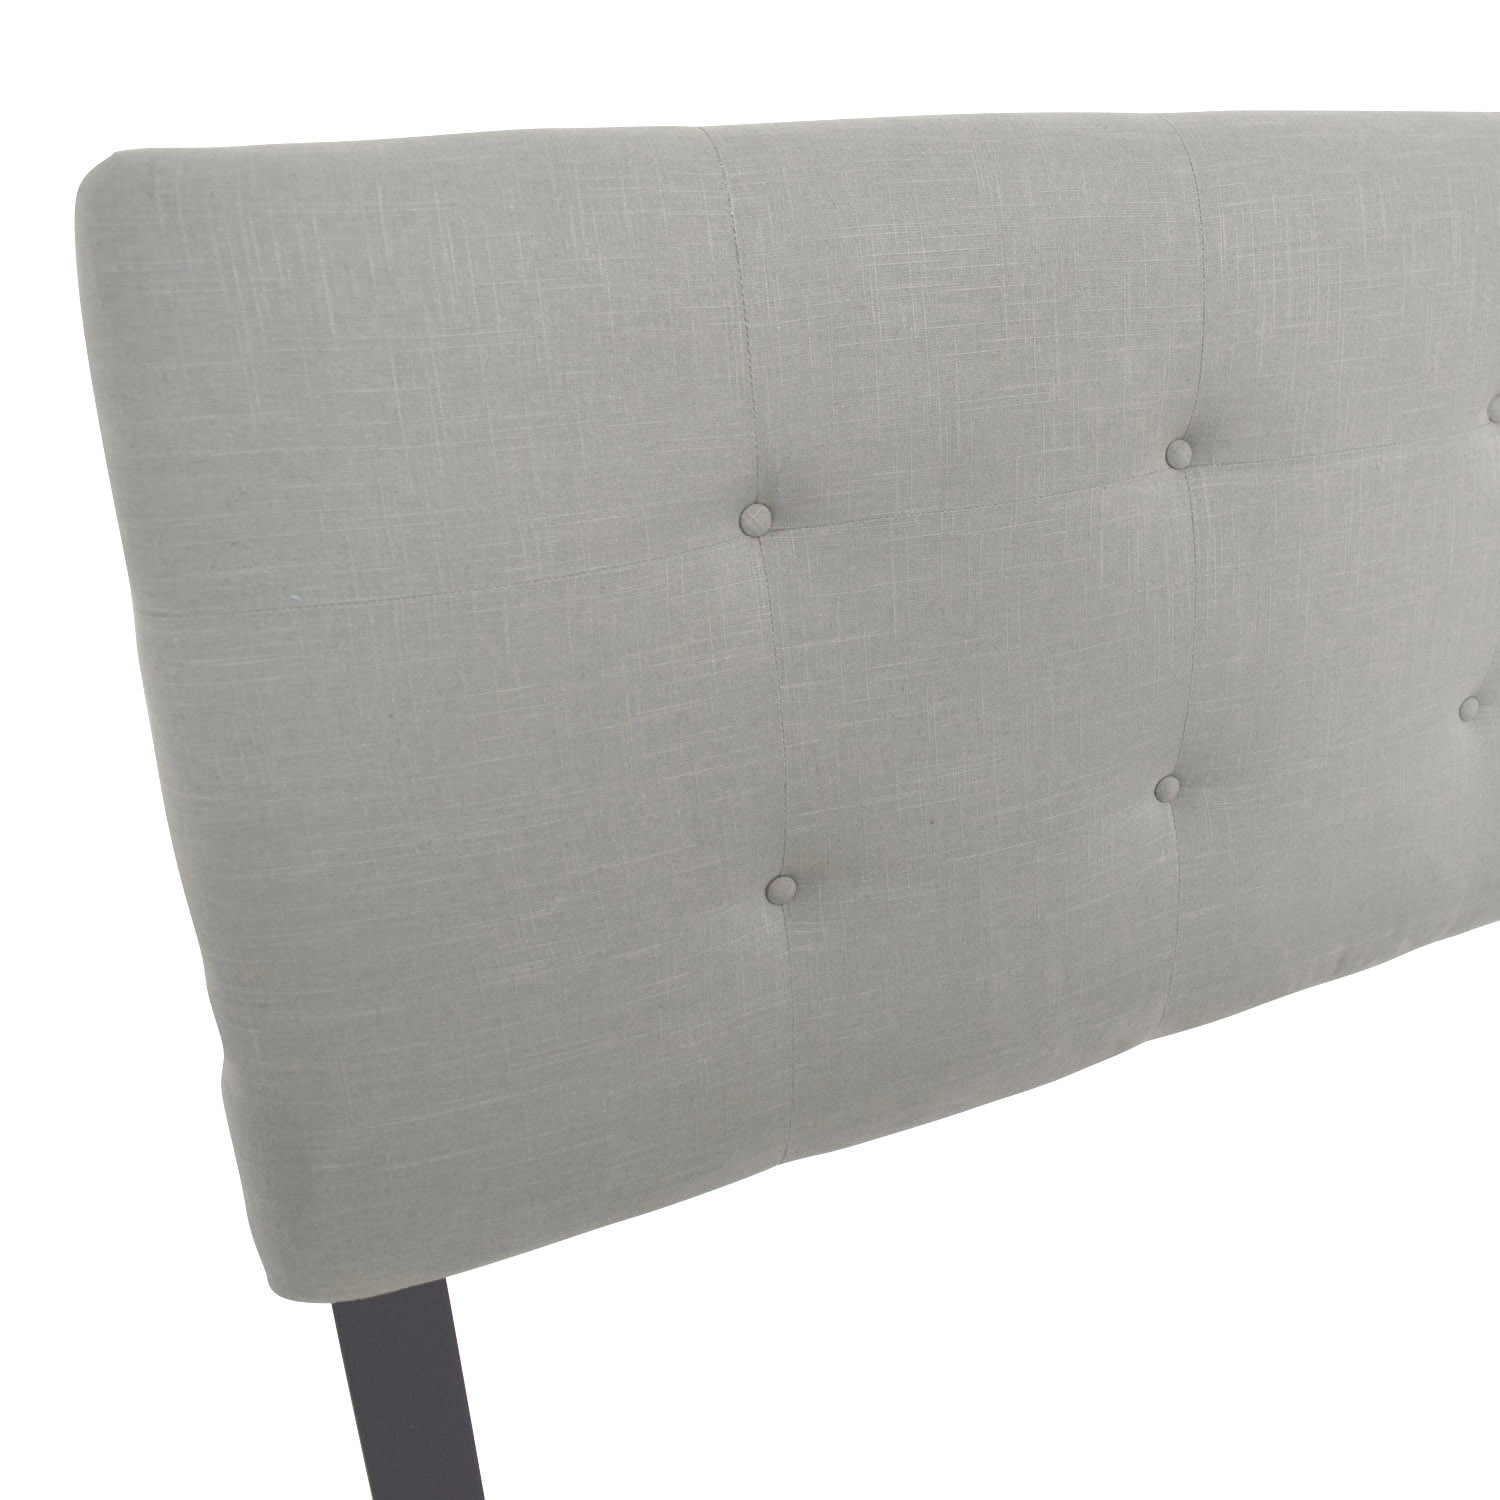 full gray headboard size shines jazmin button designer hodedah of light with wood platform queen charcoal fabulous contemporary our features panel upholstered leather tufted linen grey